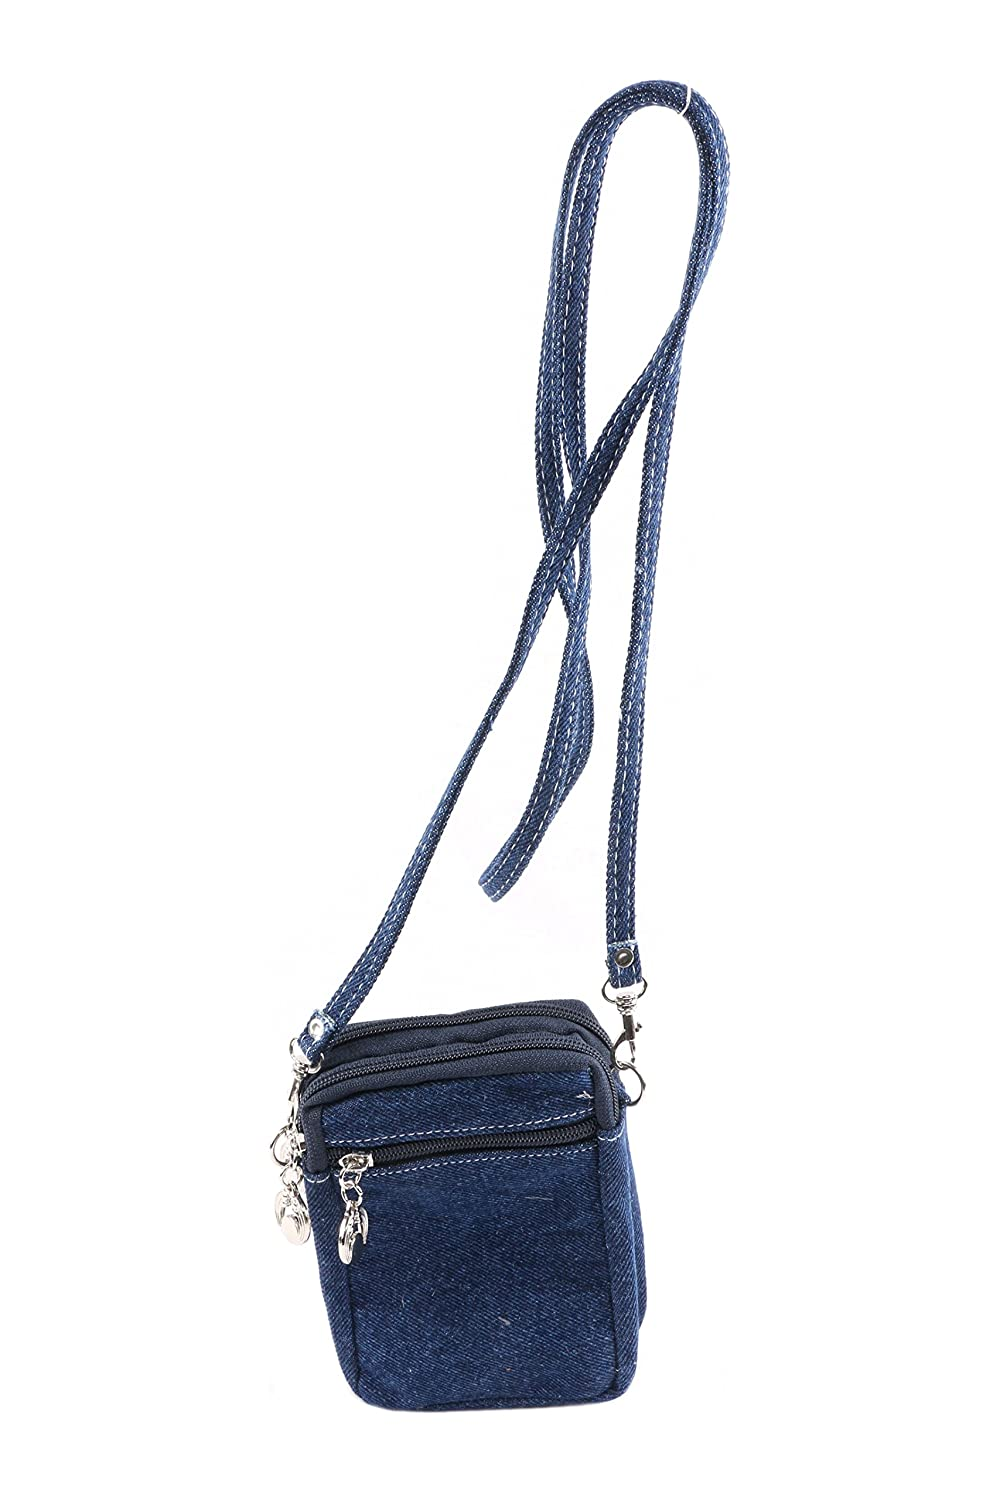 Jeans Material Side Sling Bag With Long Adjustable Strap  Amazon.in  Shoes    Handbags d93c74b3b803b